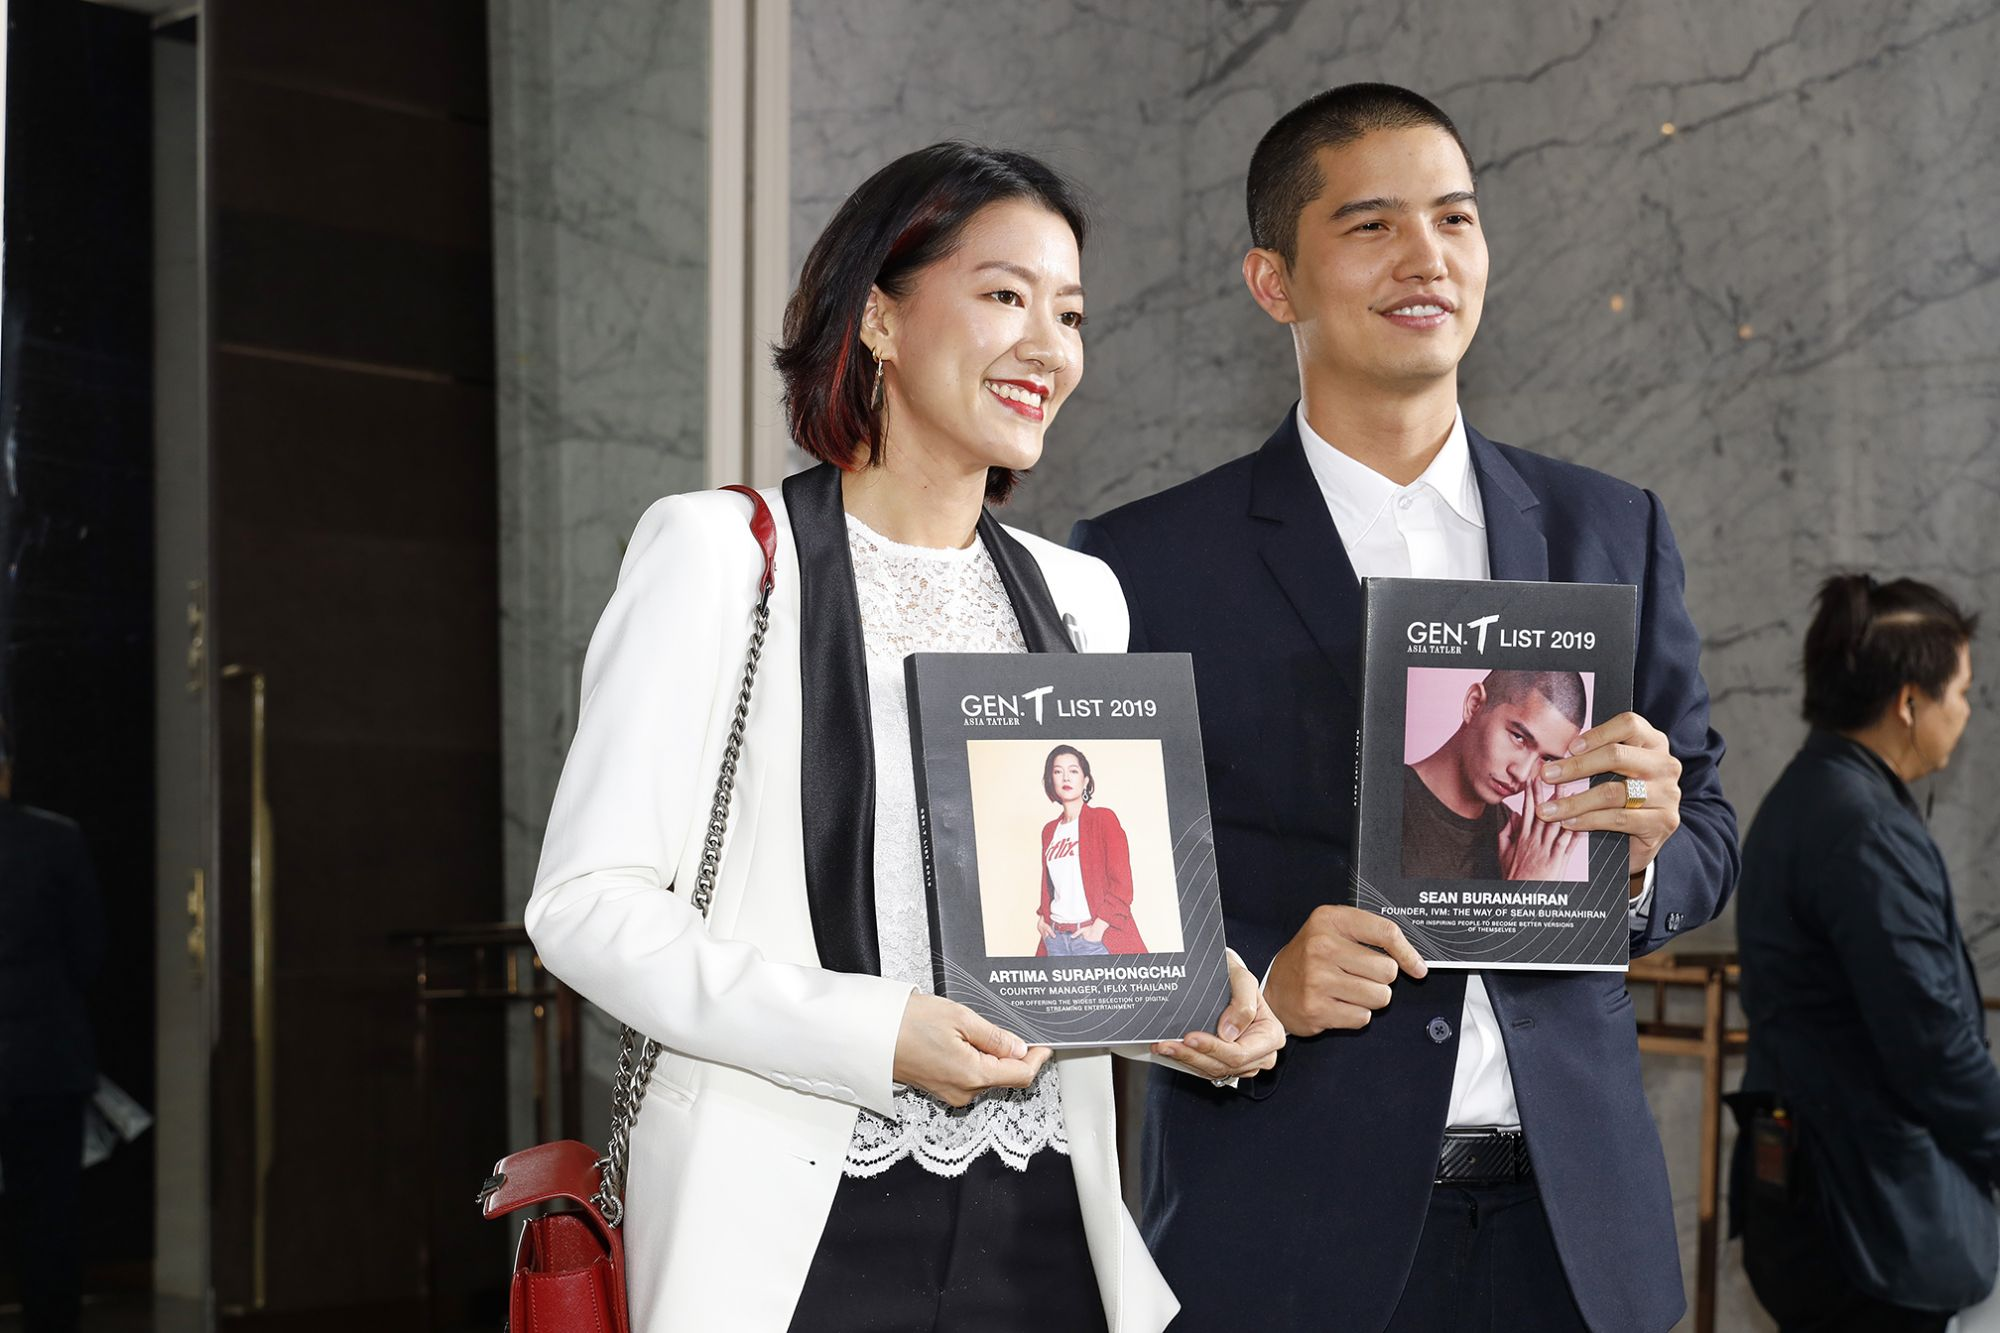 Honourees Artima Suraphongchai and Sean Buranahiran